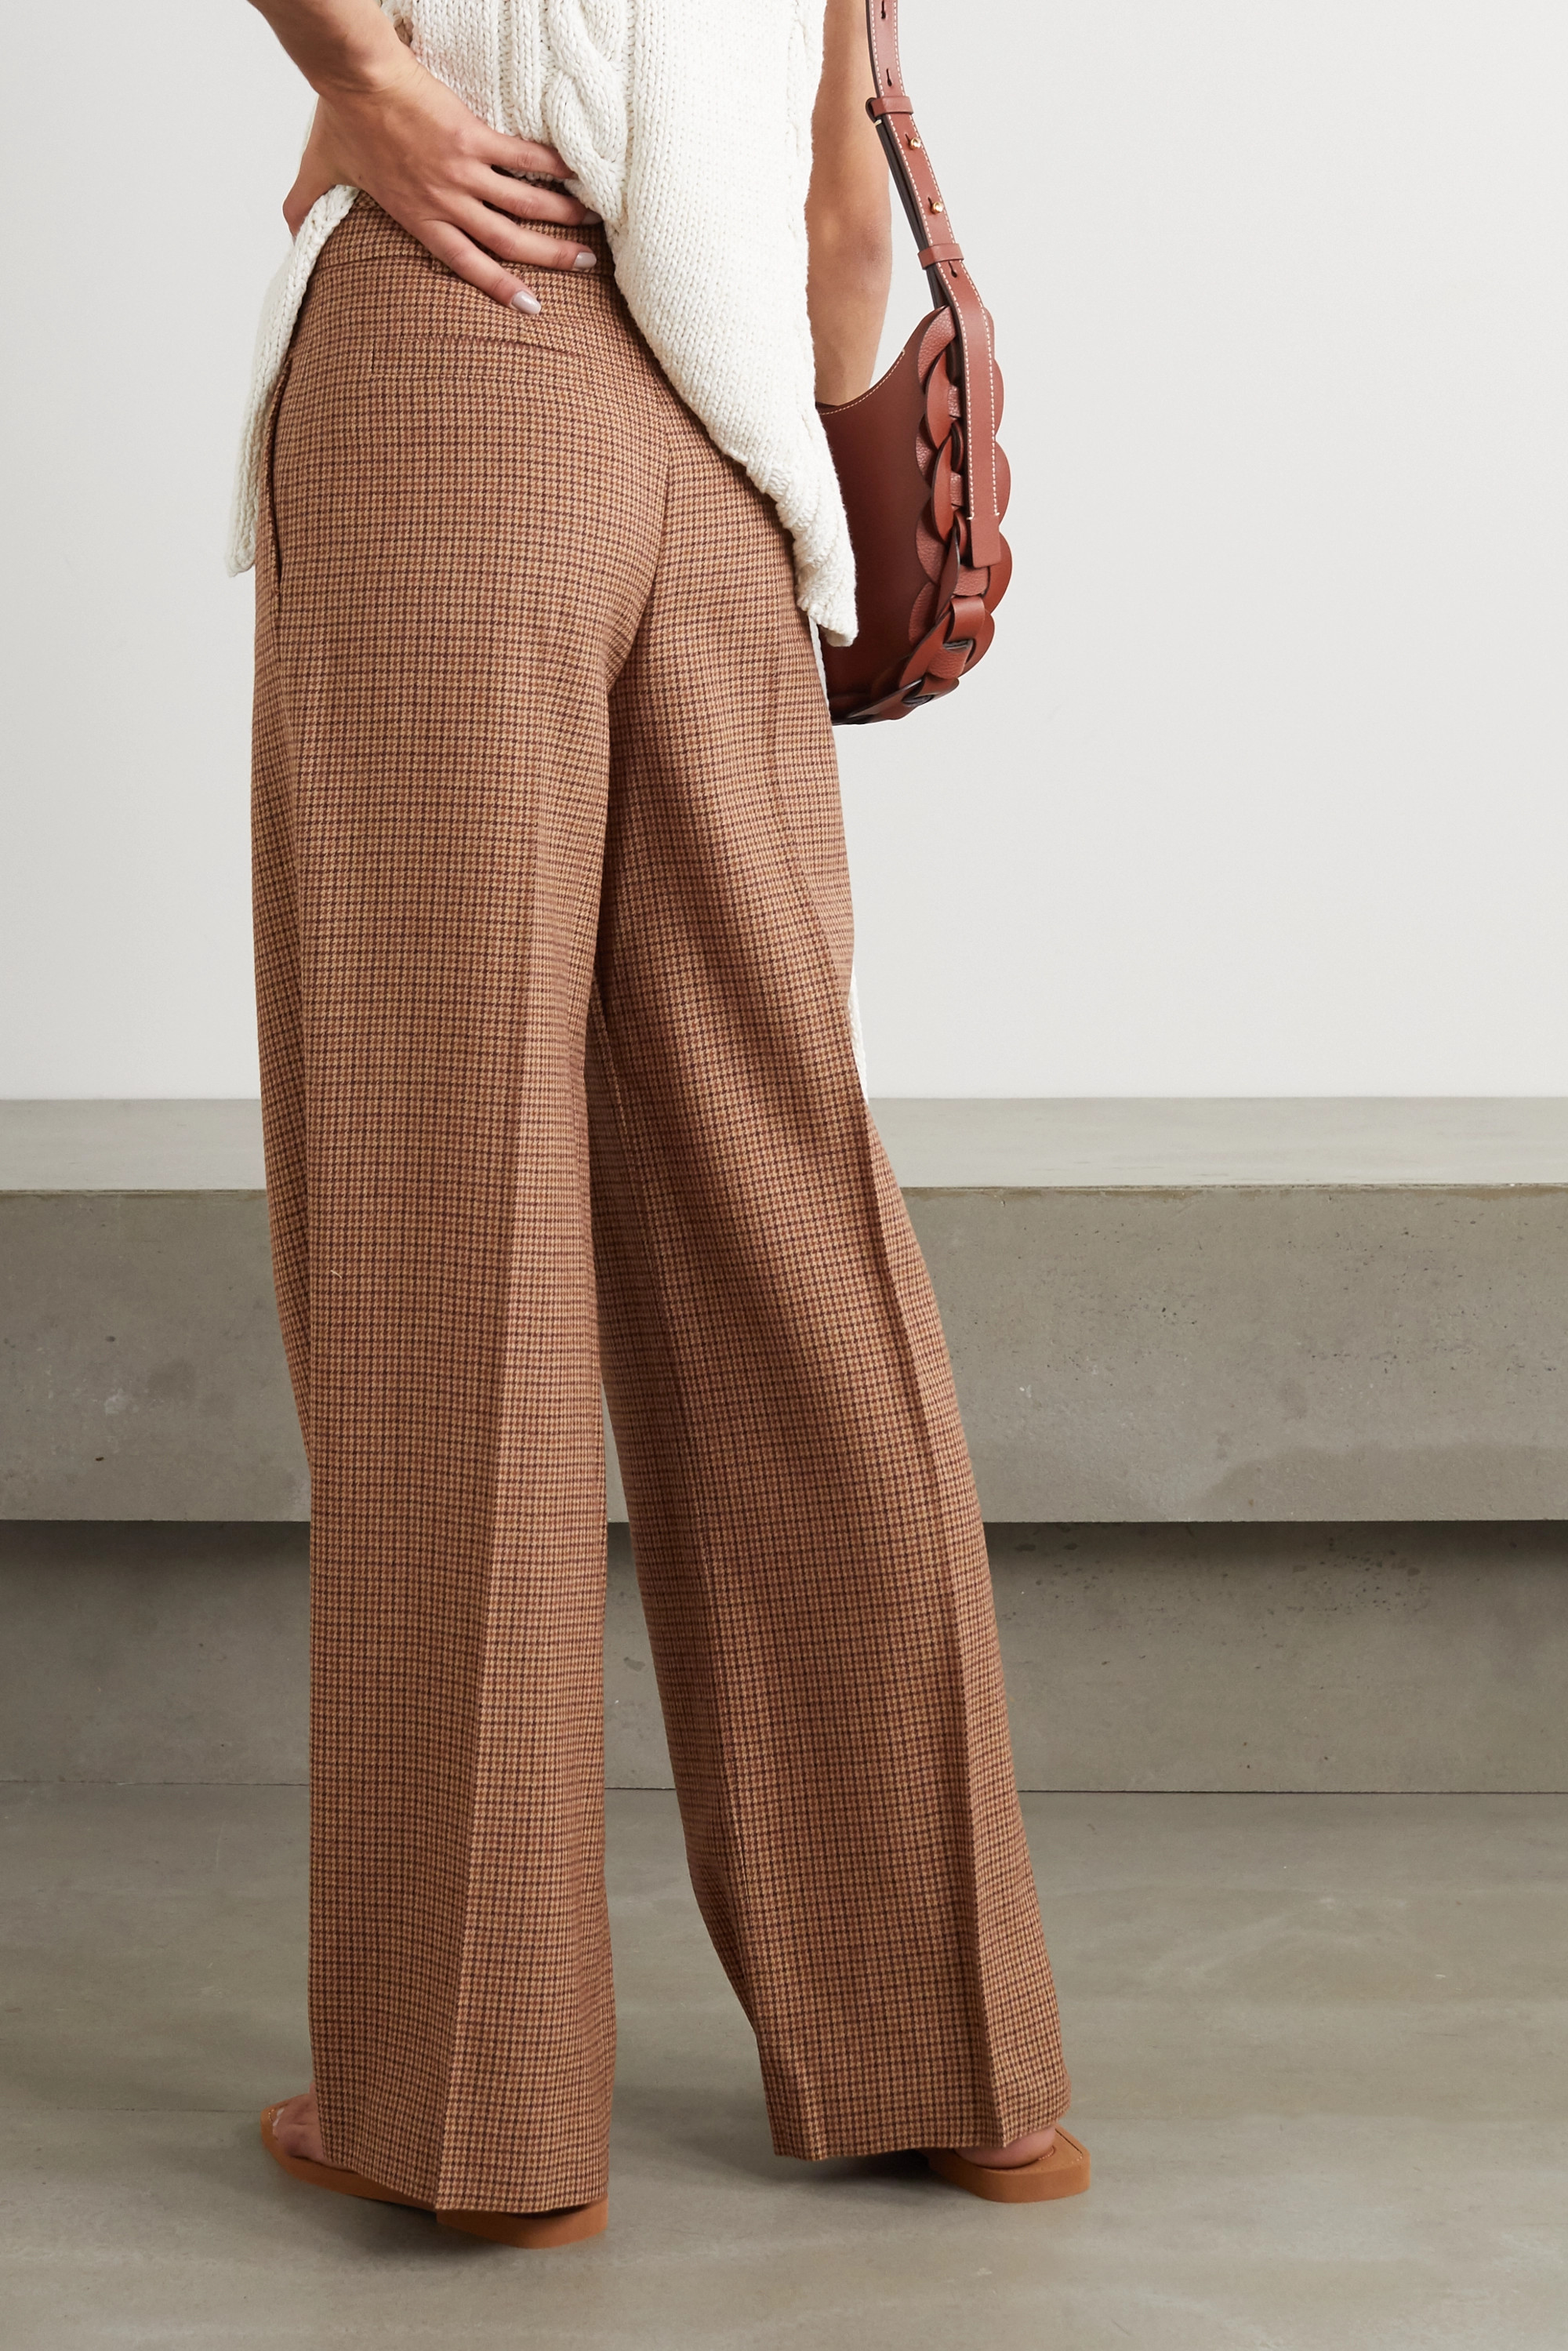 Chloé Pleated houndstooth wool wide-leg pants